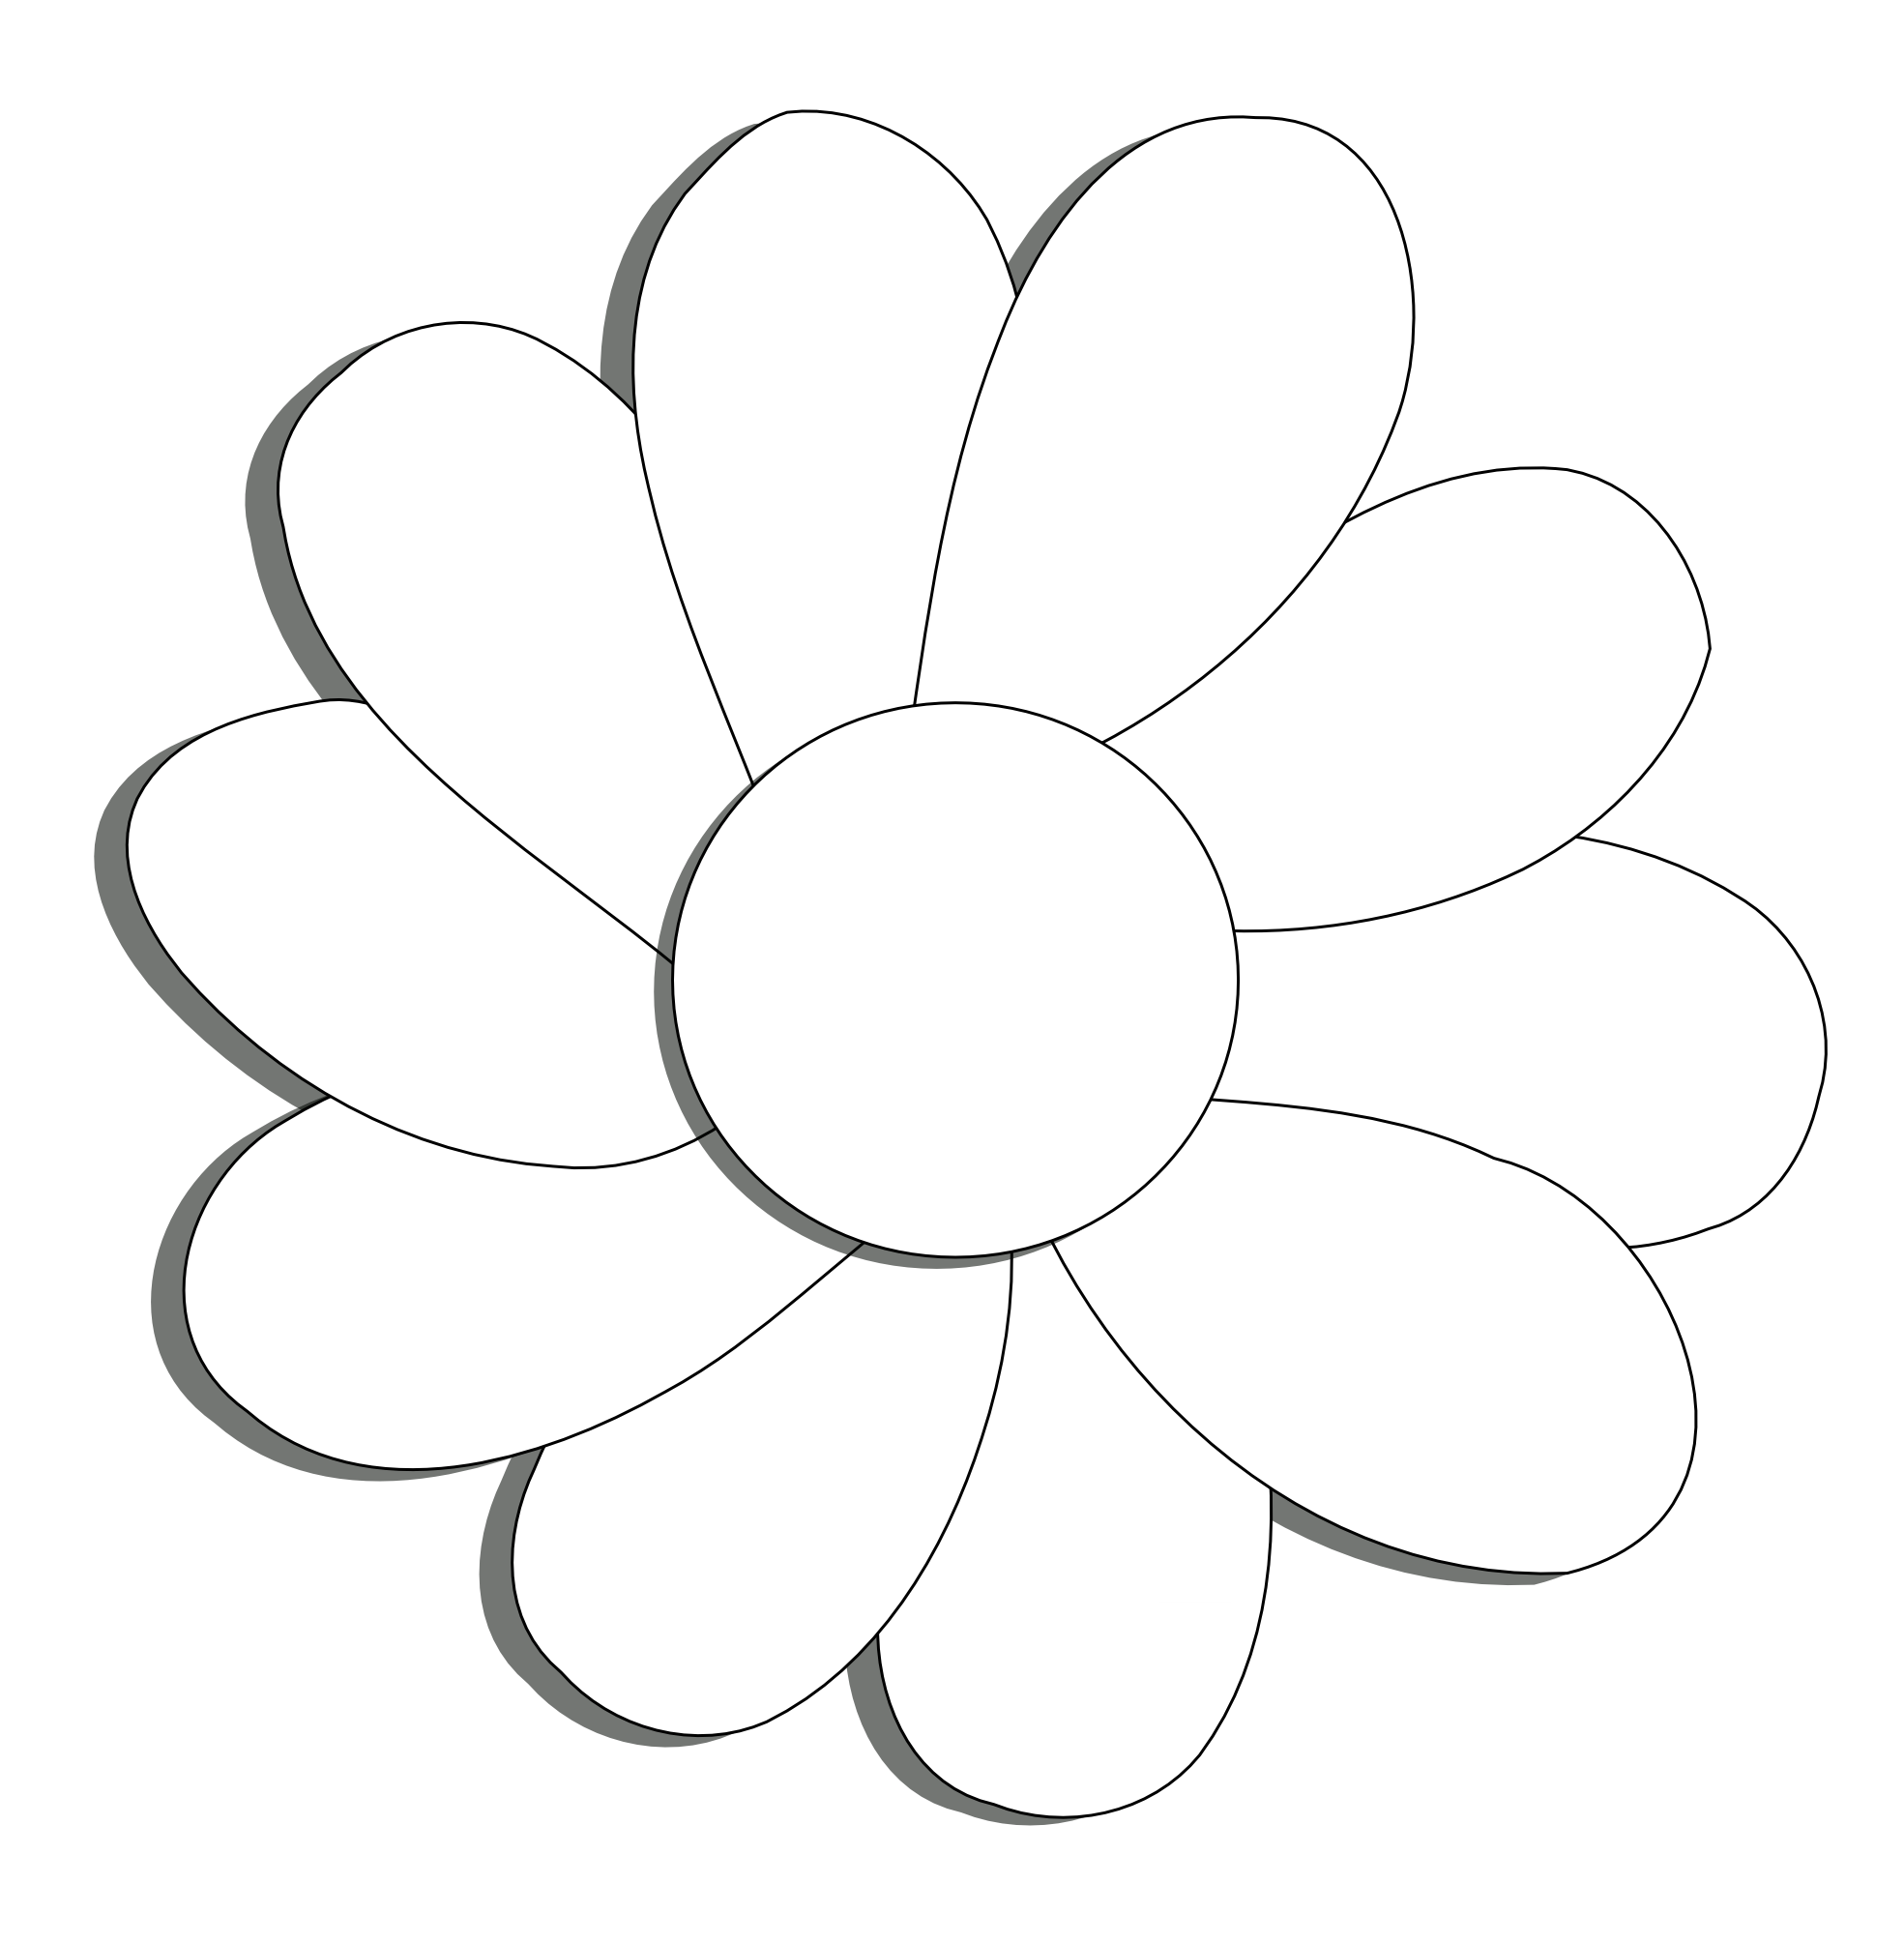 White drawing black background. Collection of flower